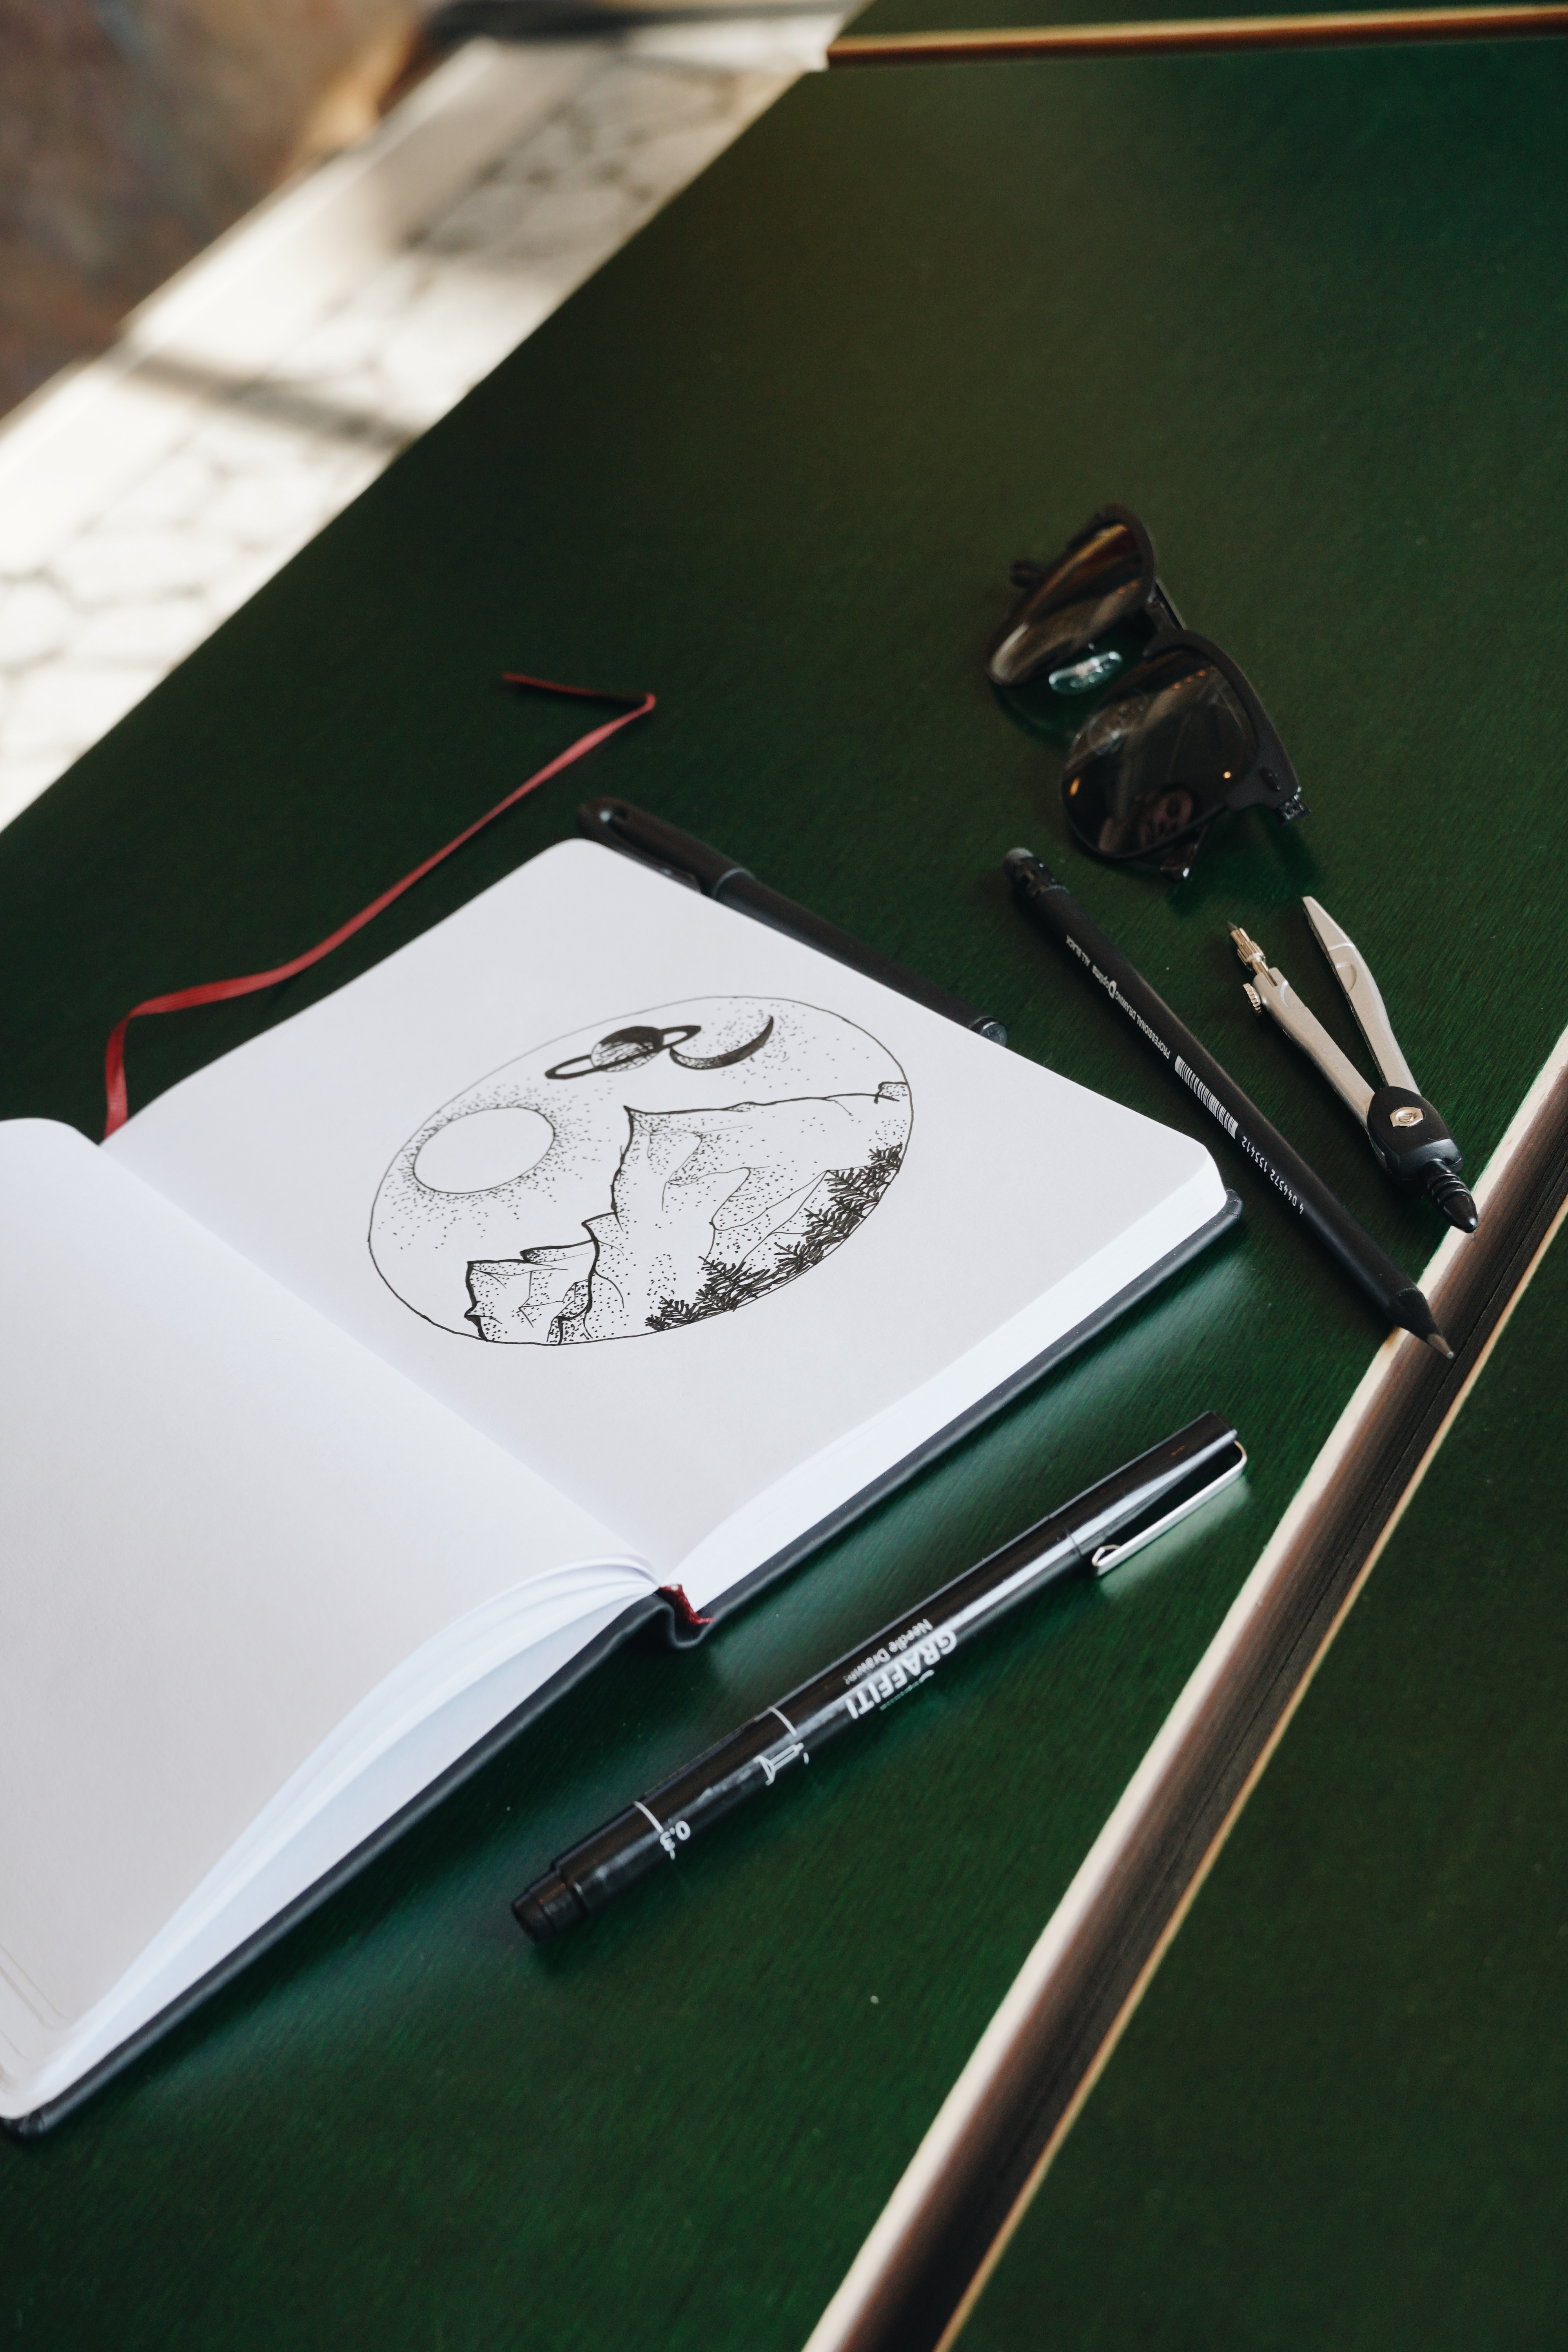 journal with drawings of mountains in a circle, equipment around it on desk